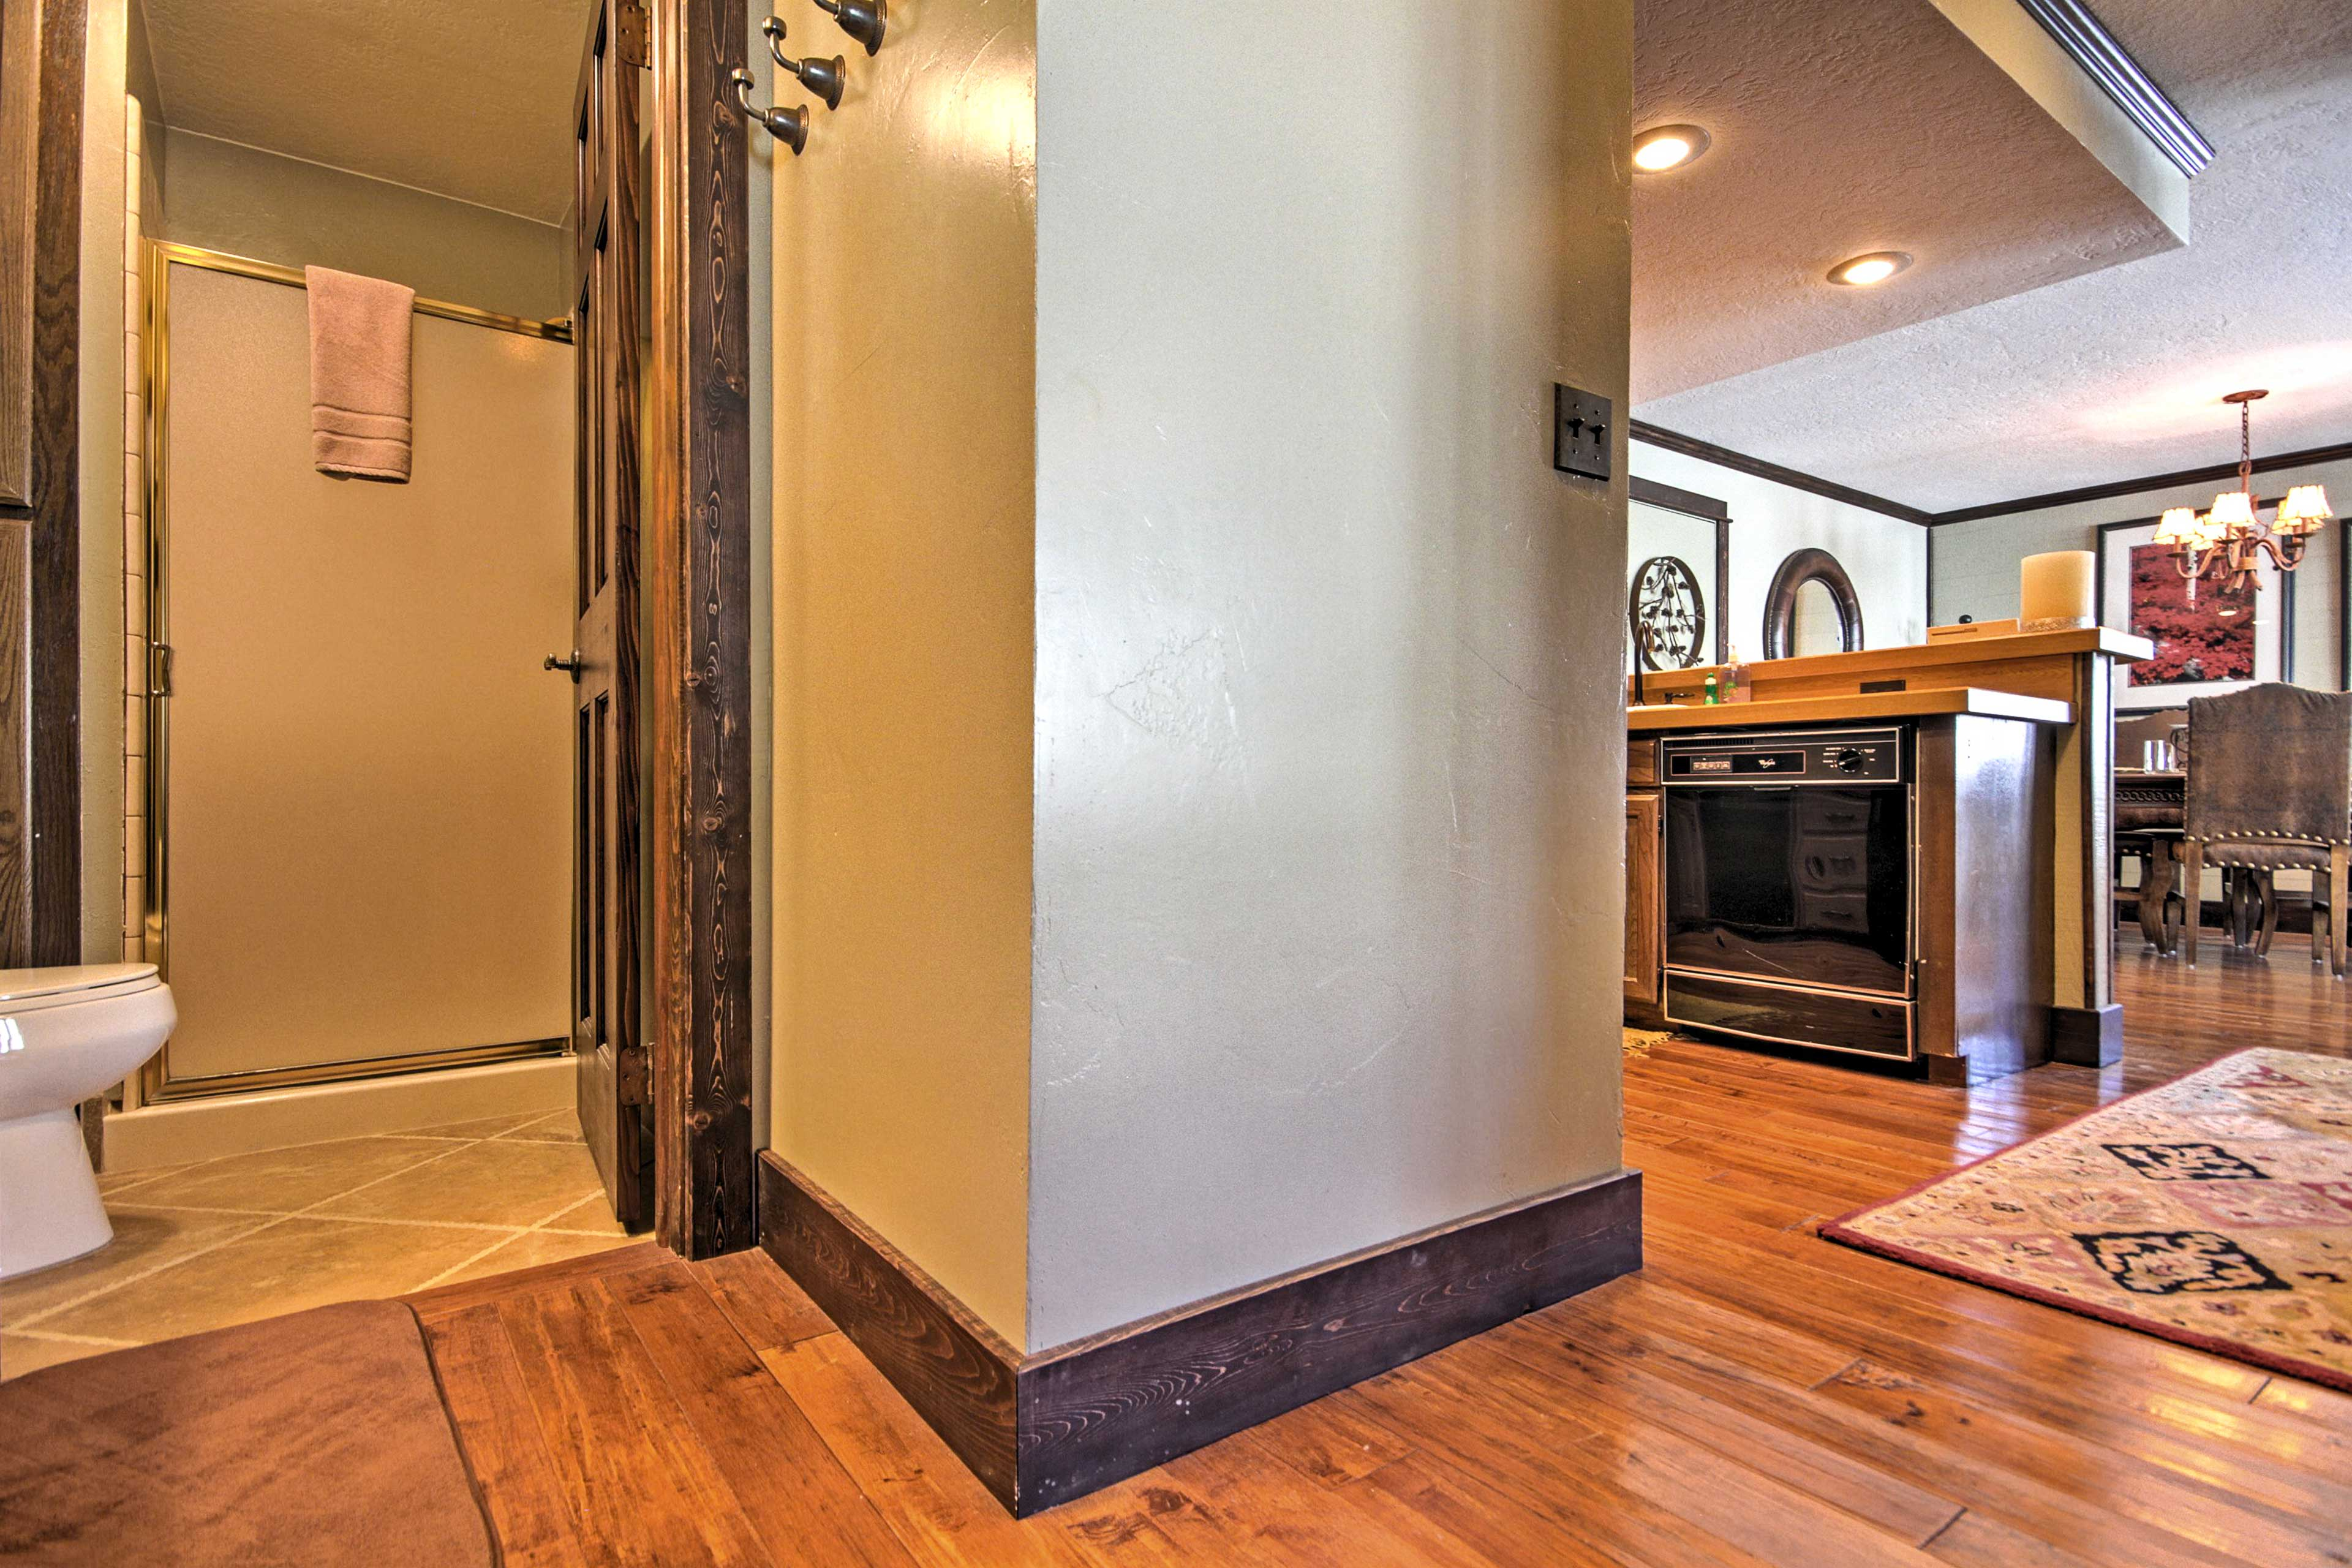 Wood planked floors run throughout the kitchen, dining area, and living area.